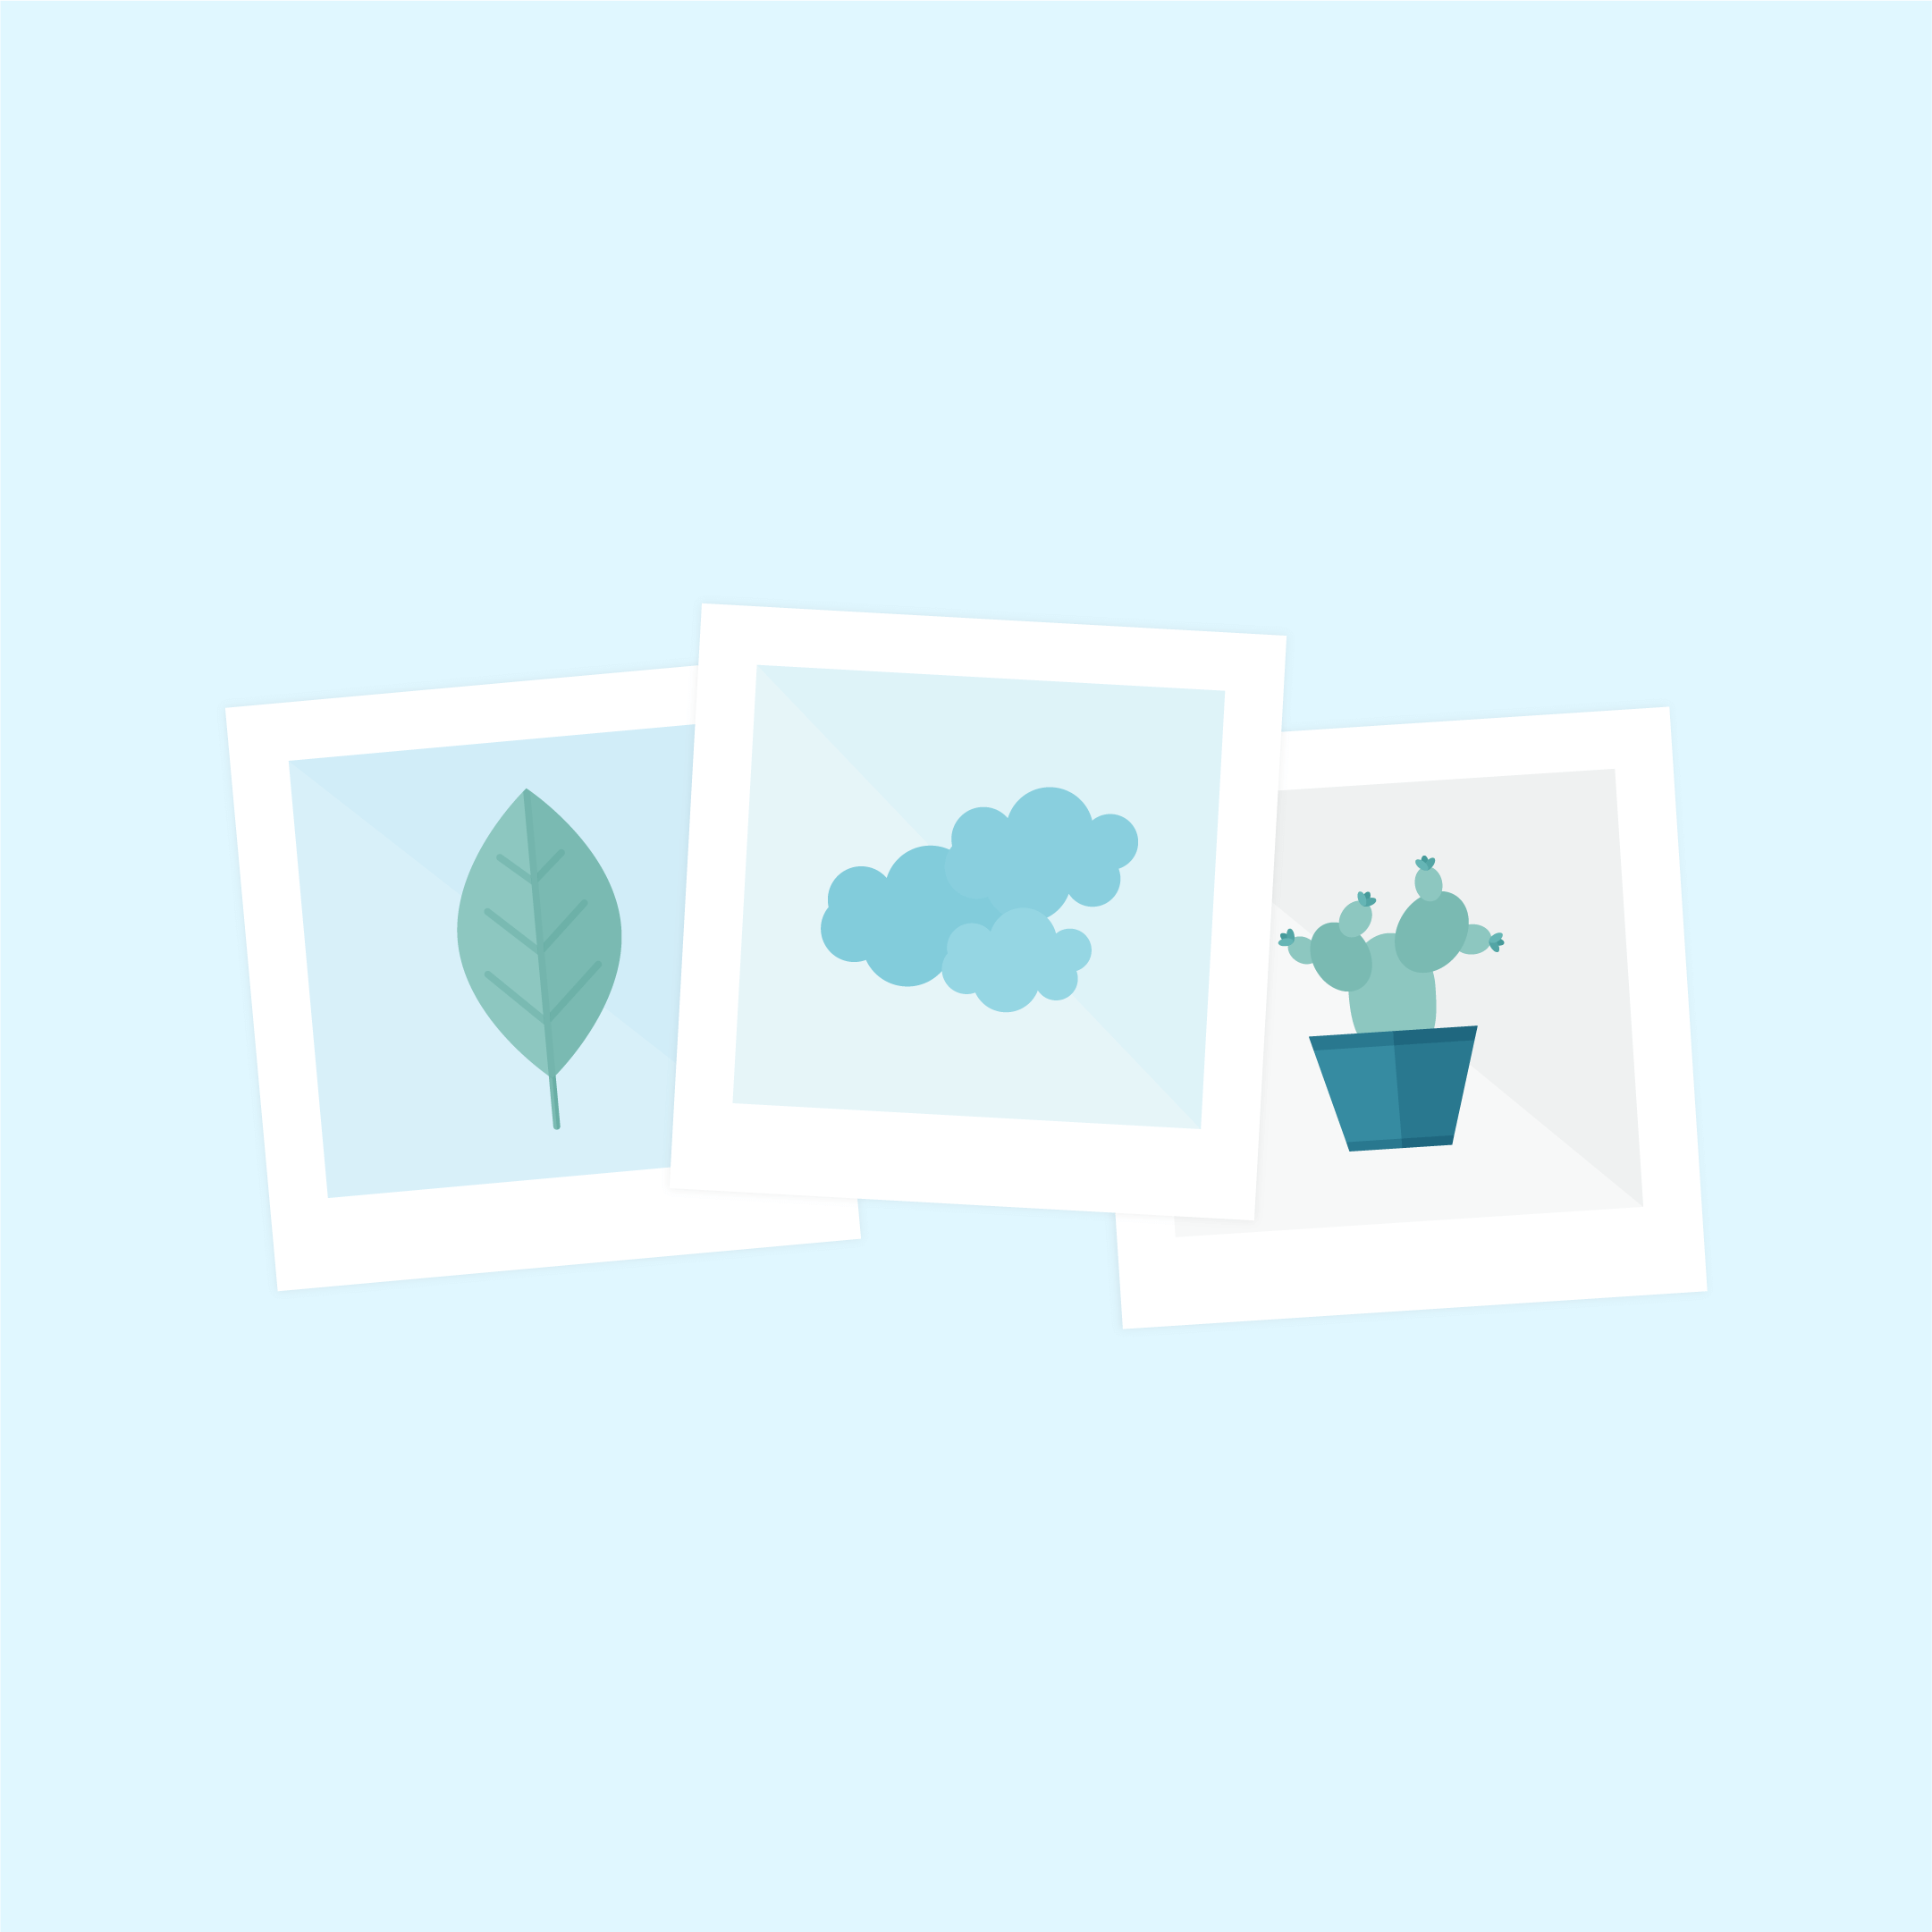 Vector illustration of three polaroid photos: leaf, clouds & cactus in flat design style